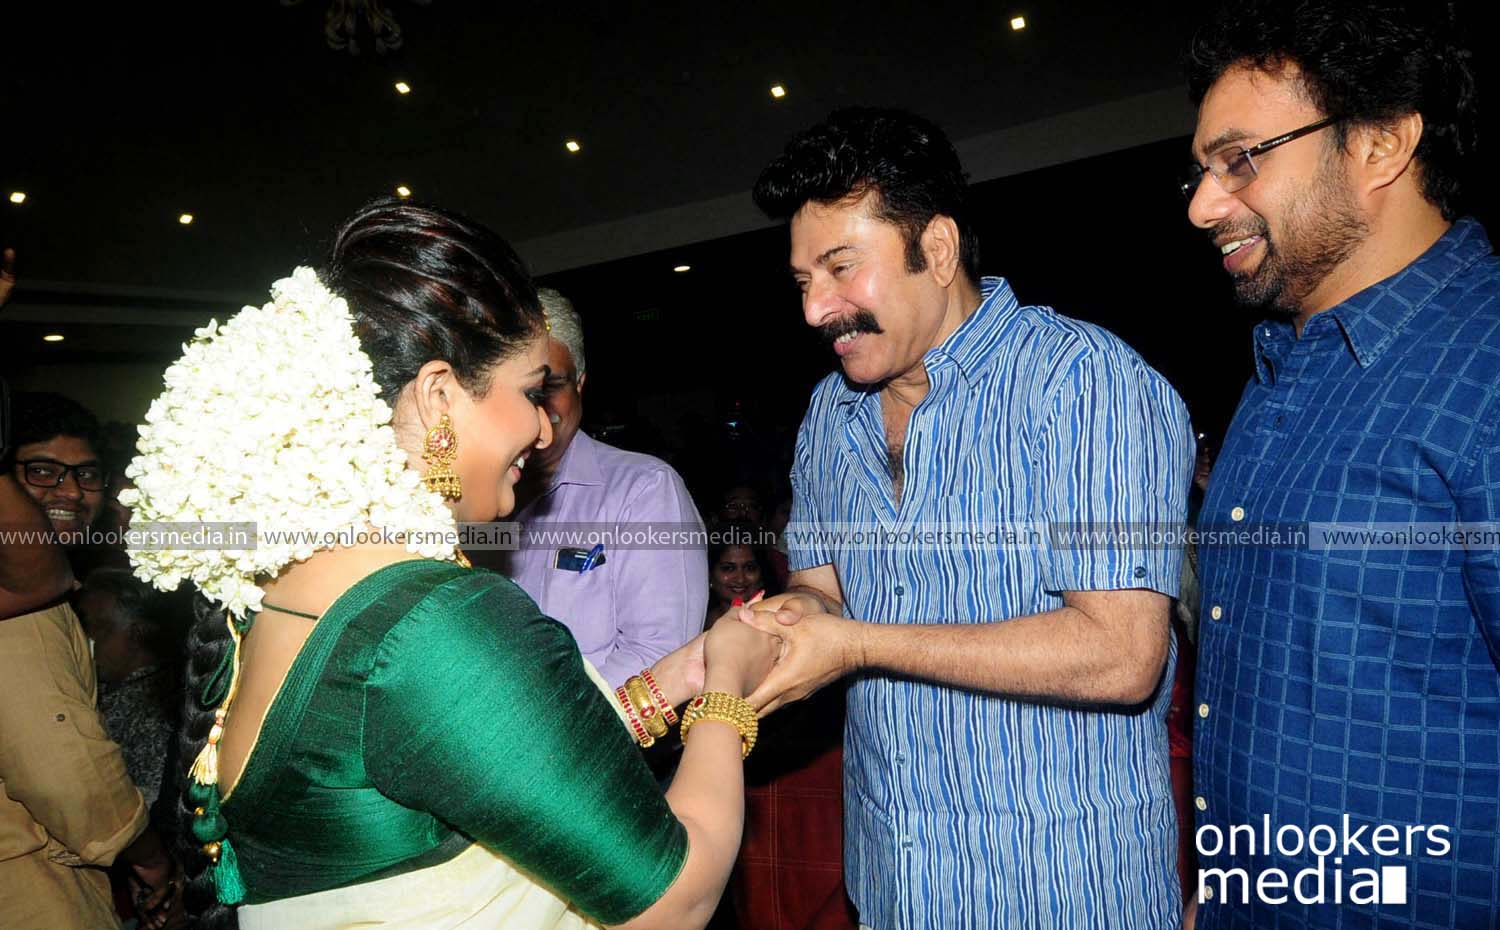 http://onlookersmedia.in/wp-content/uploads/2016/11/Dileep-Kavya-Madhavan-Wedding-Stills-Photos-7.jpg